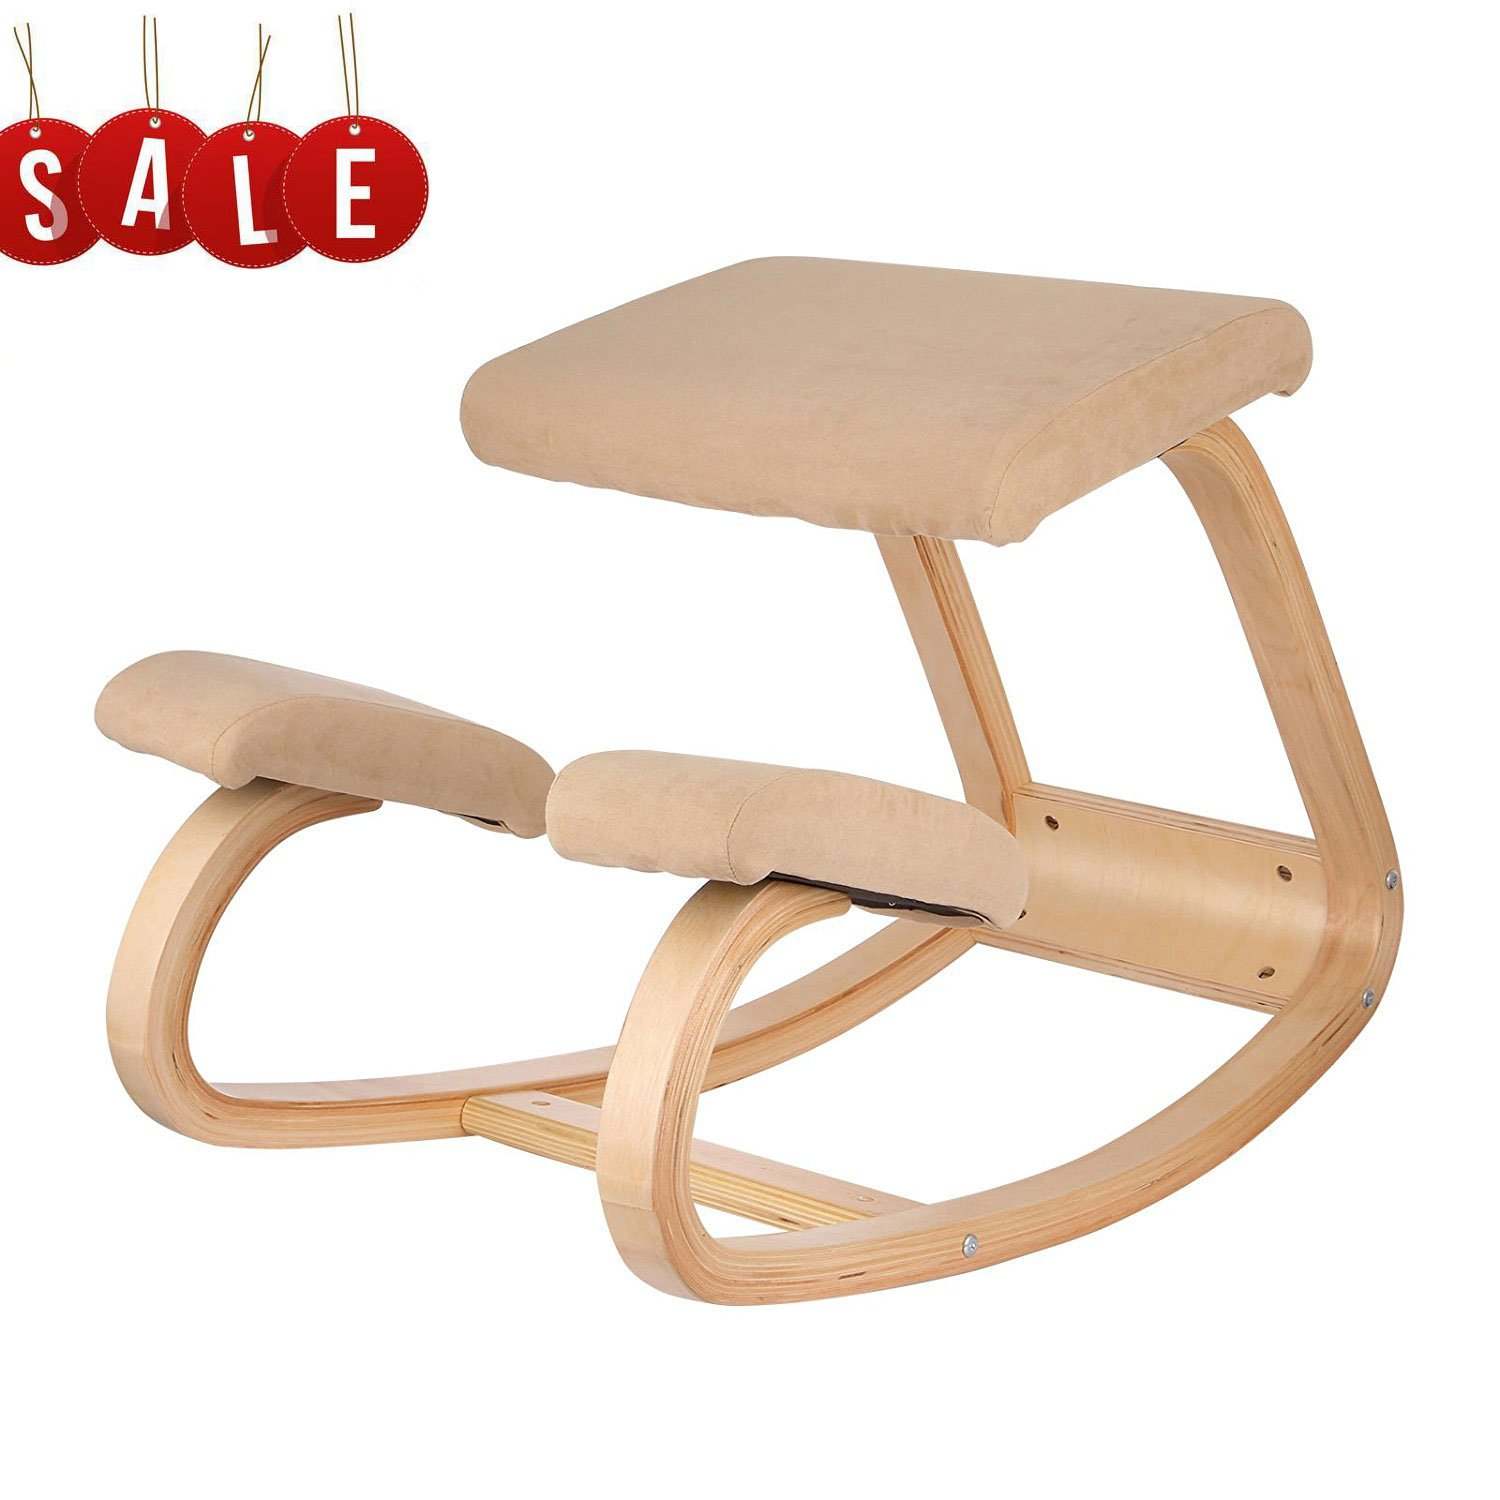 VEVOR Ergonomic Kneeling Chair Beech wood Ergonomic Kneeling Office Chair Perfect for Body Shaping and Relieving Stress (White)